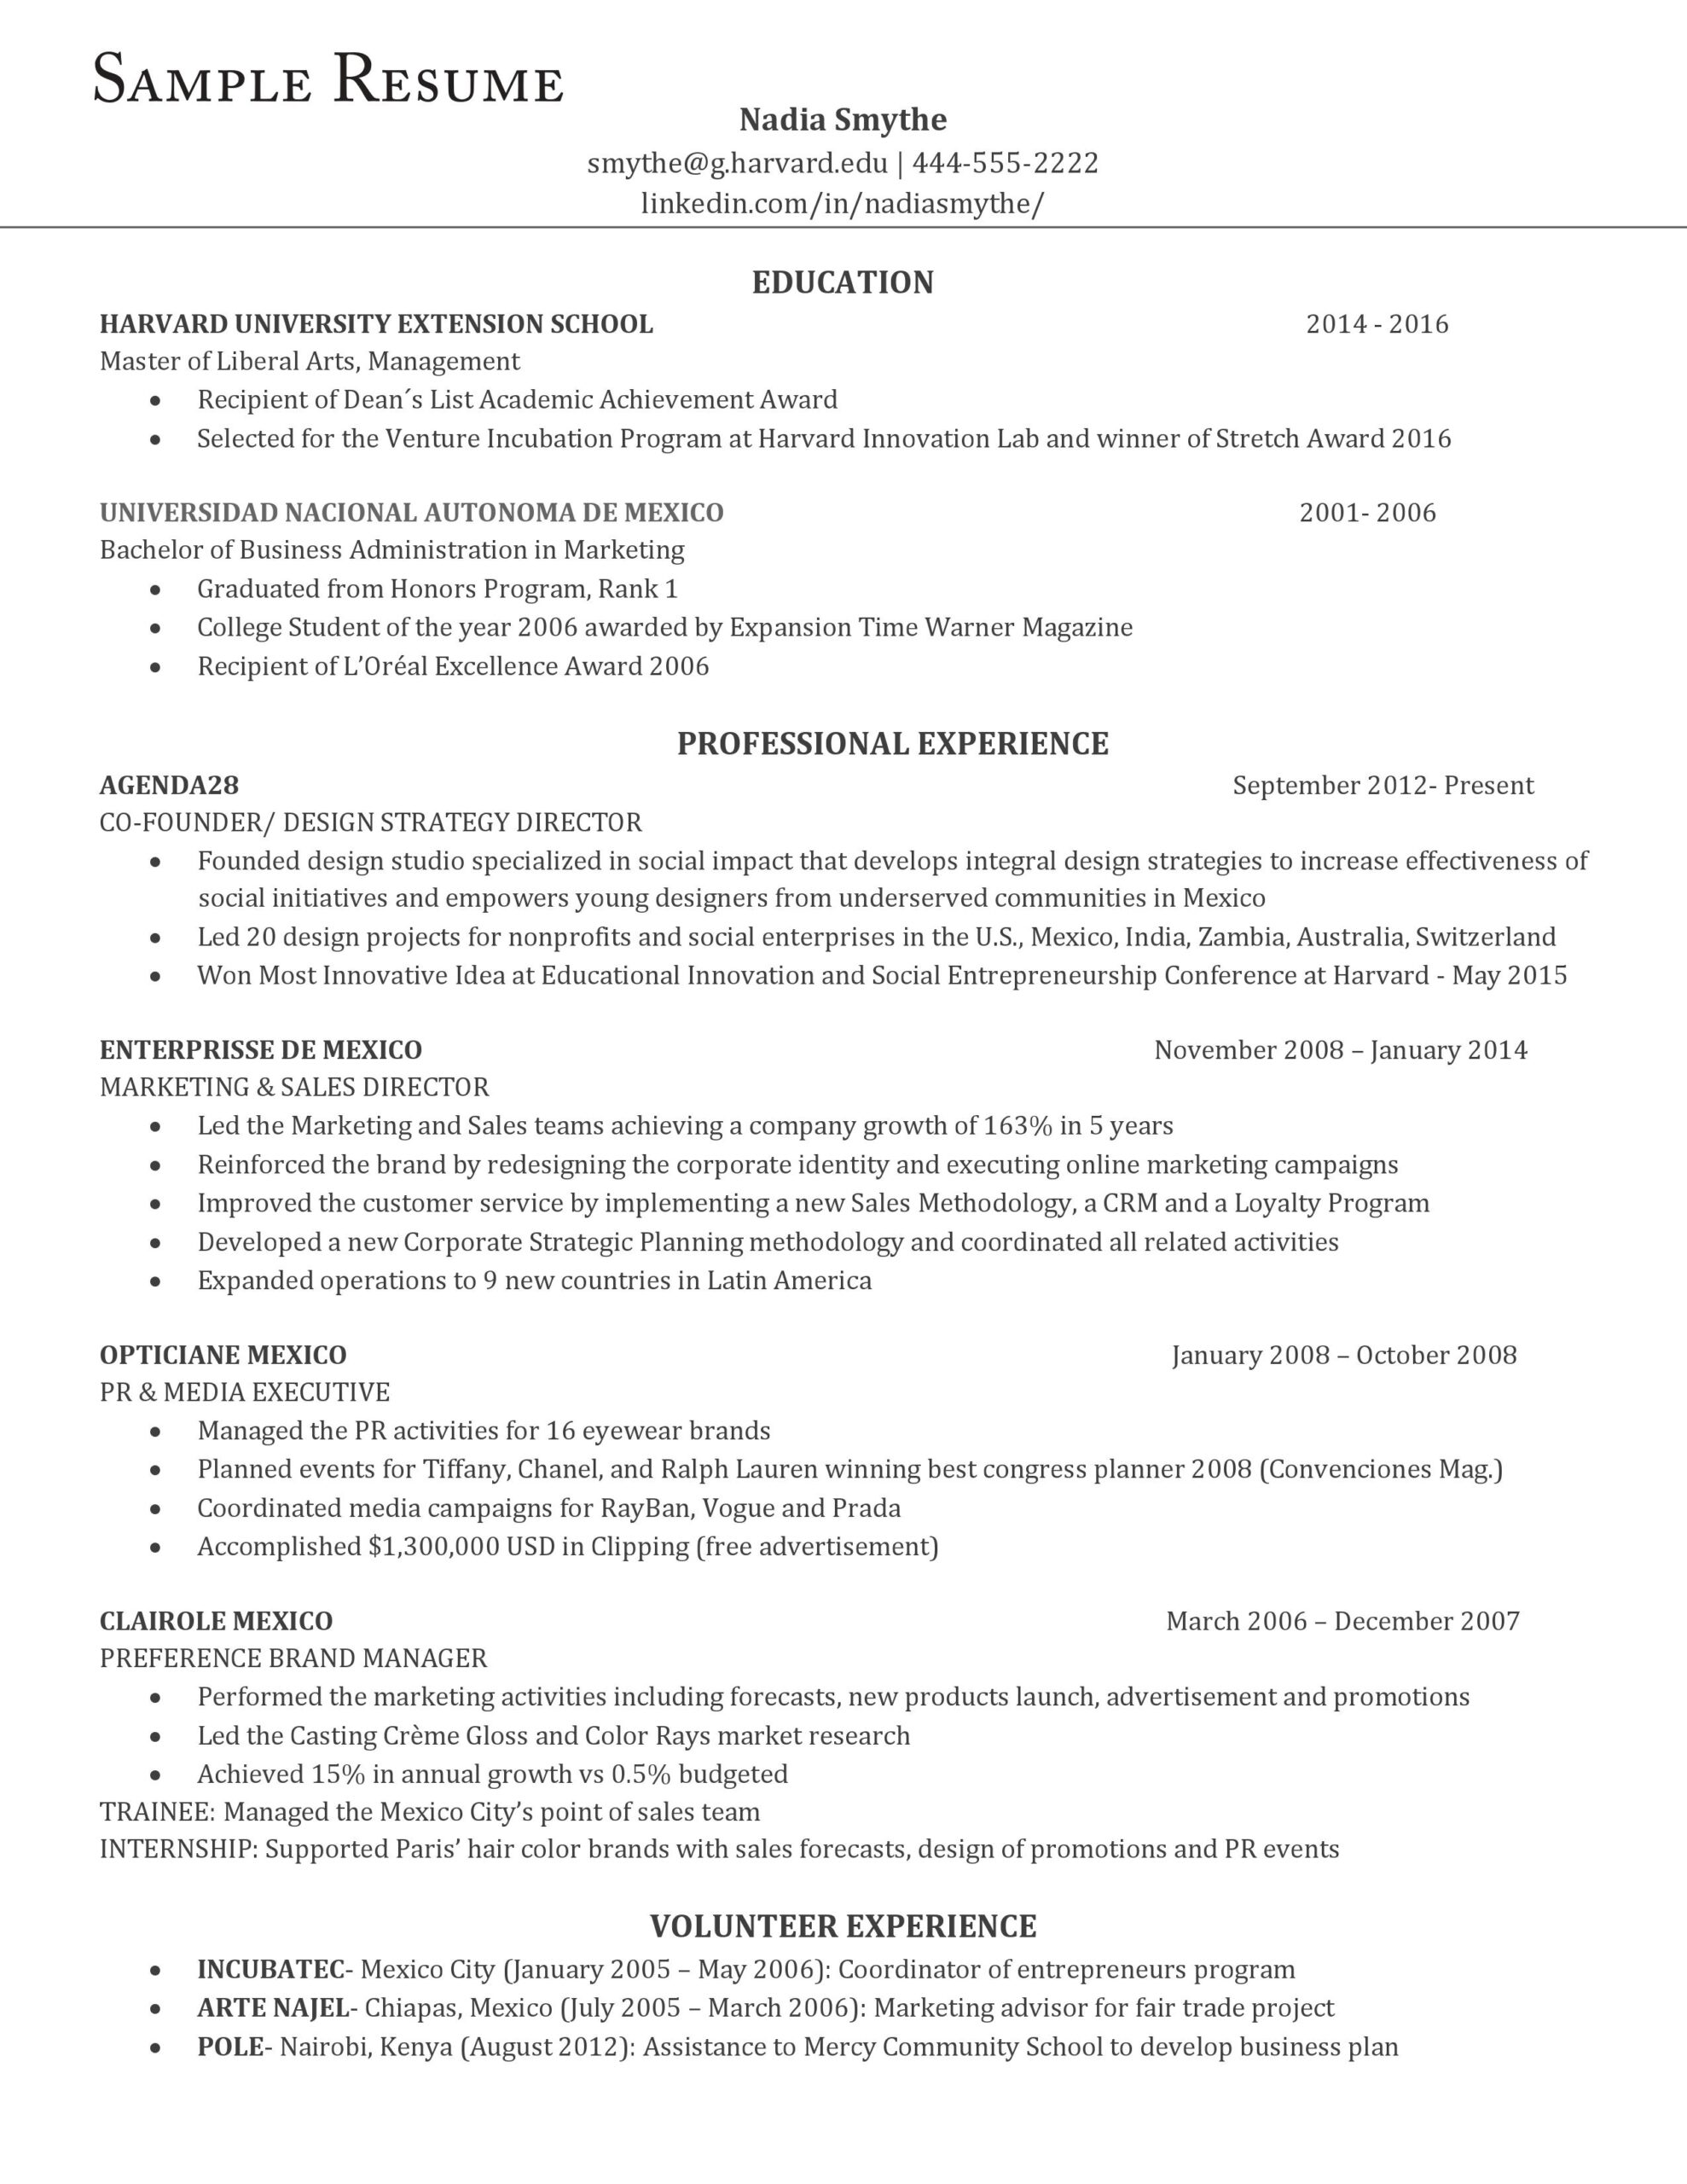 an example of the perfect resume according to harvard career experts professional Resume Professional Experience Resume